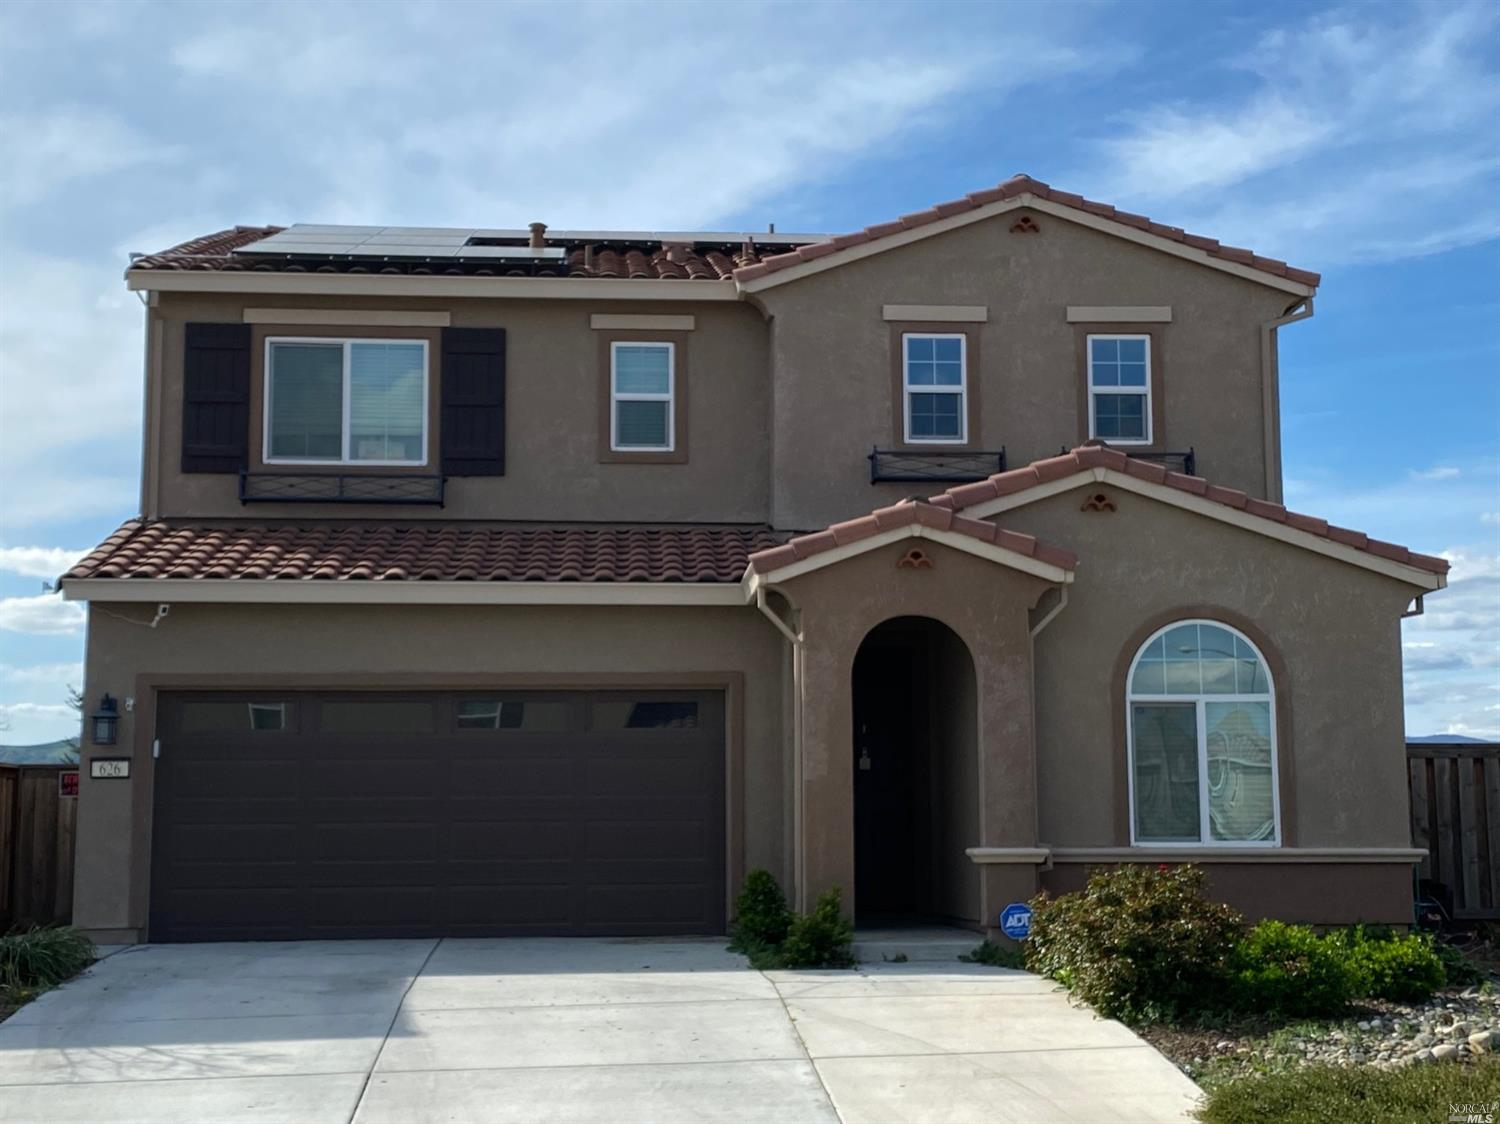 Photo of 626 Sitka Drive, Vacaville, CA 95687